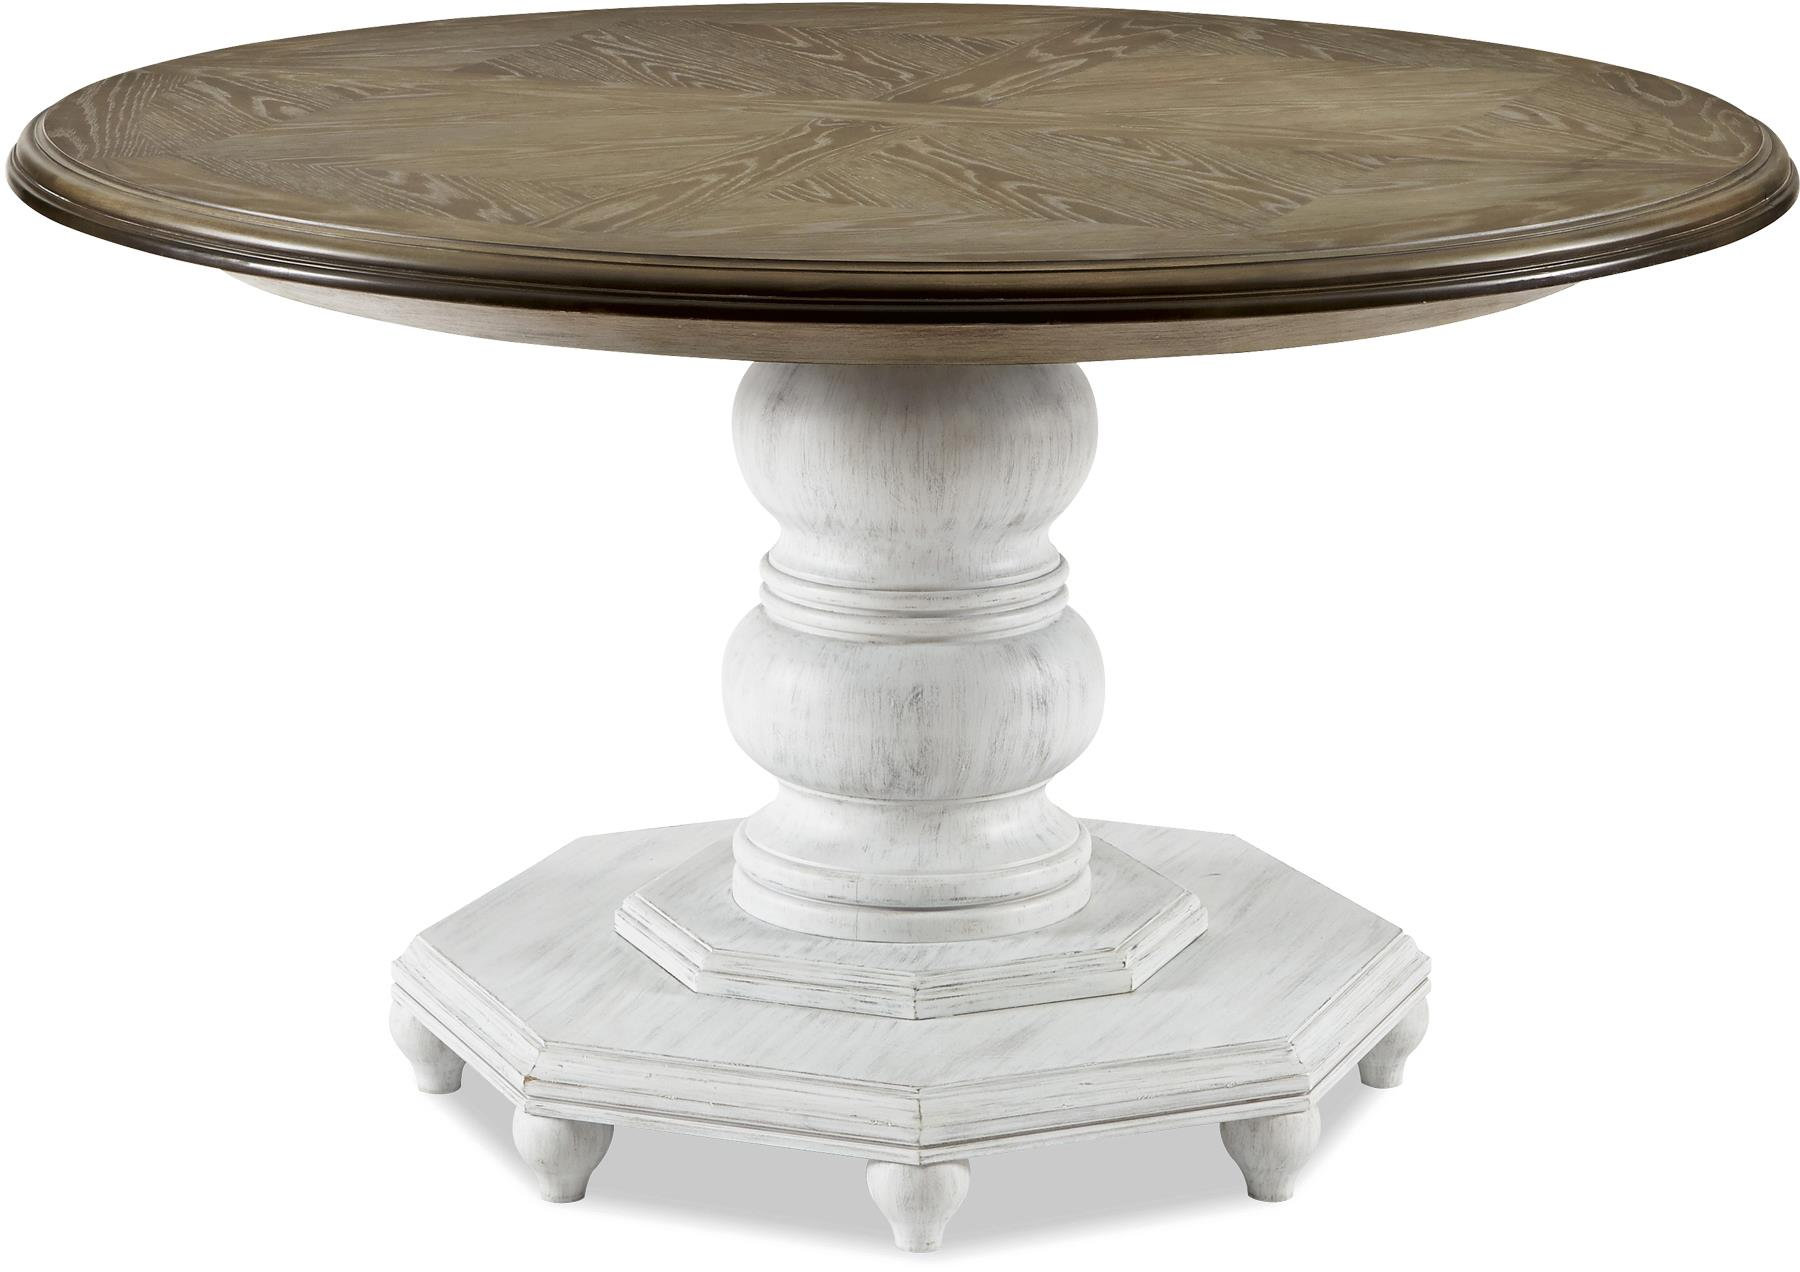 Paula Deen by Universal Dogwood Breakfast Table - Item Number: 597A657